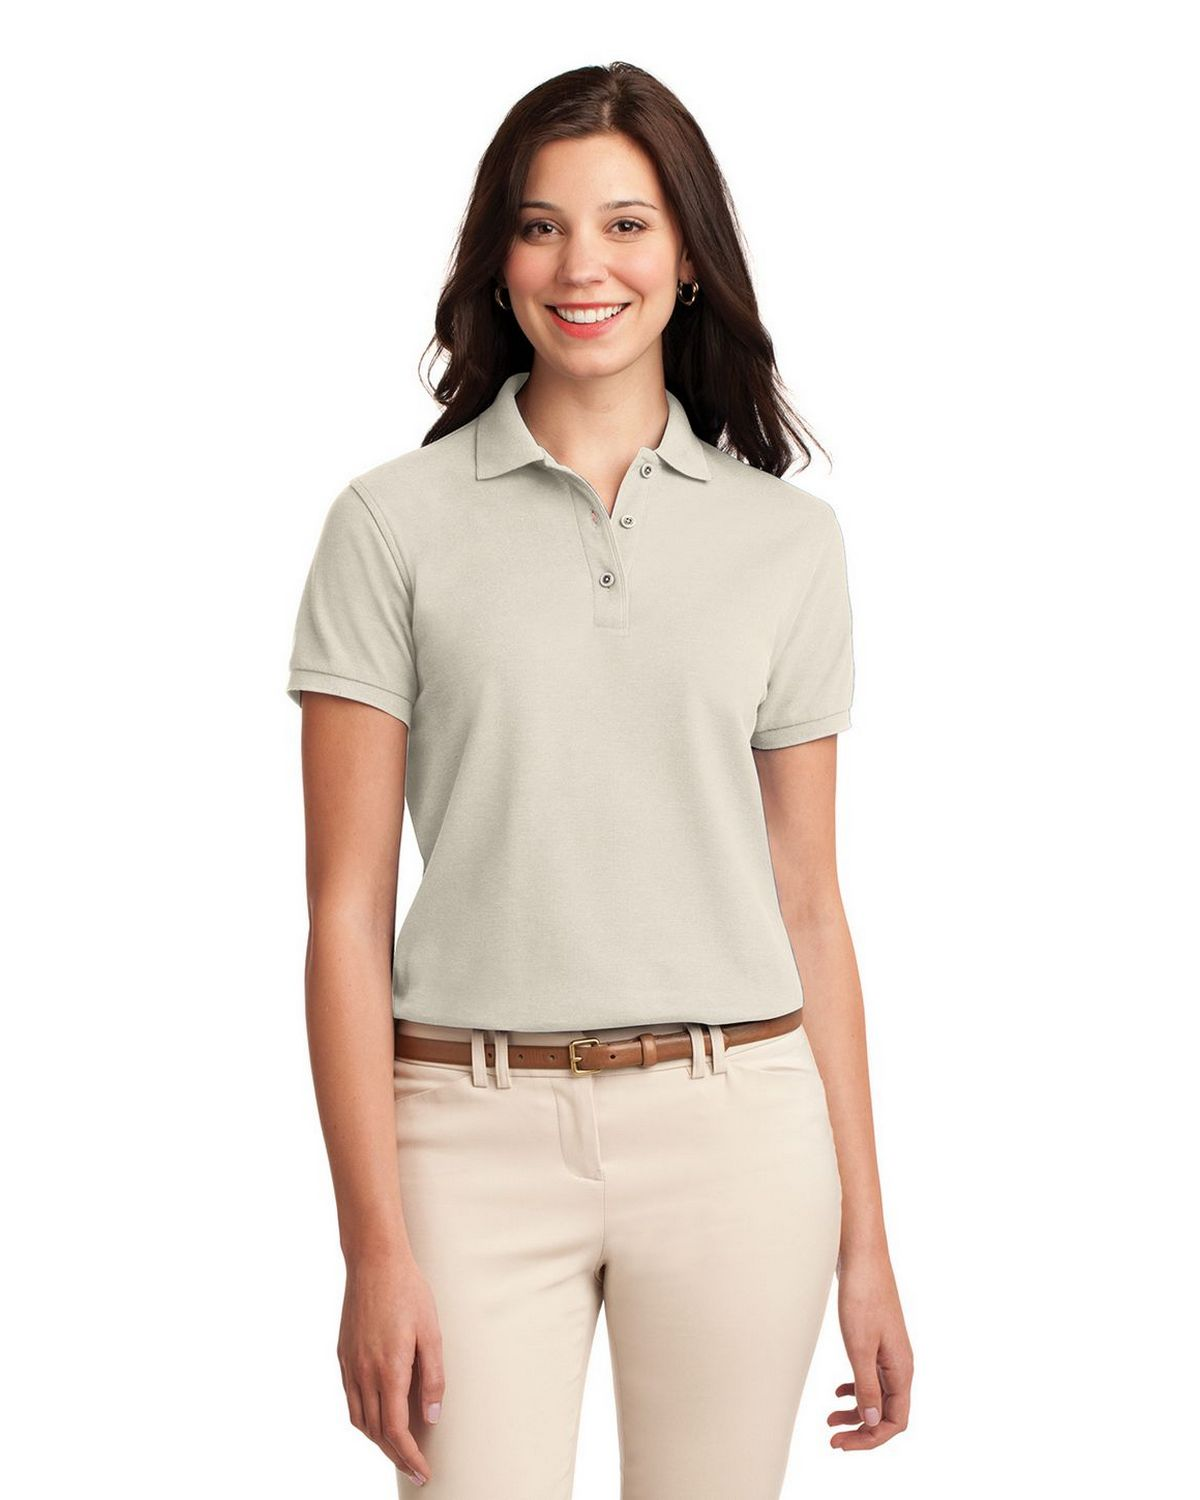 Port Authority L500 Women's Silk Touch Polo - Light Stone - XS #silk